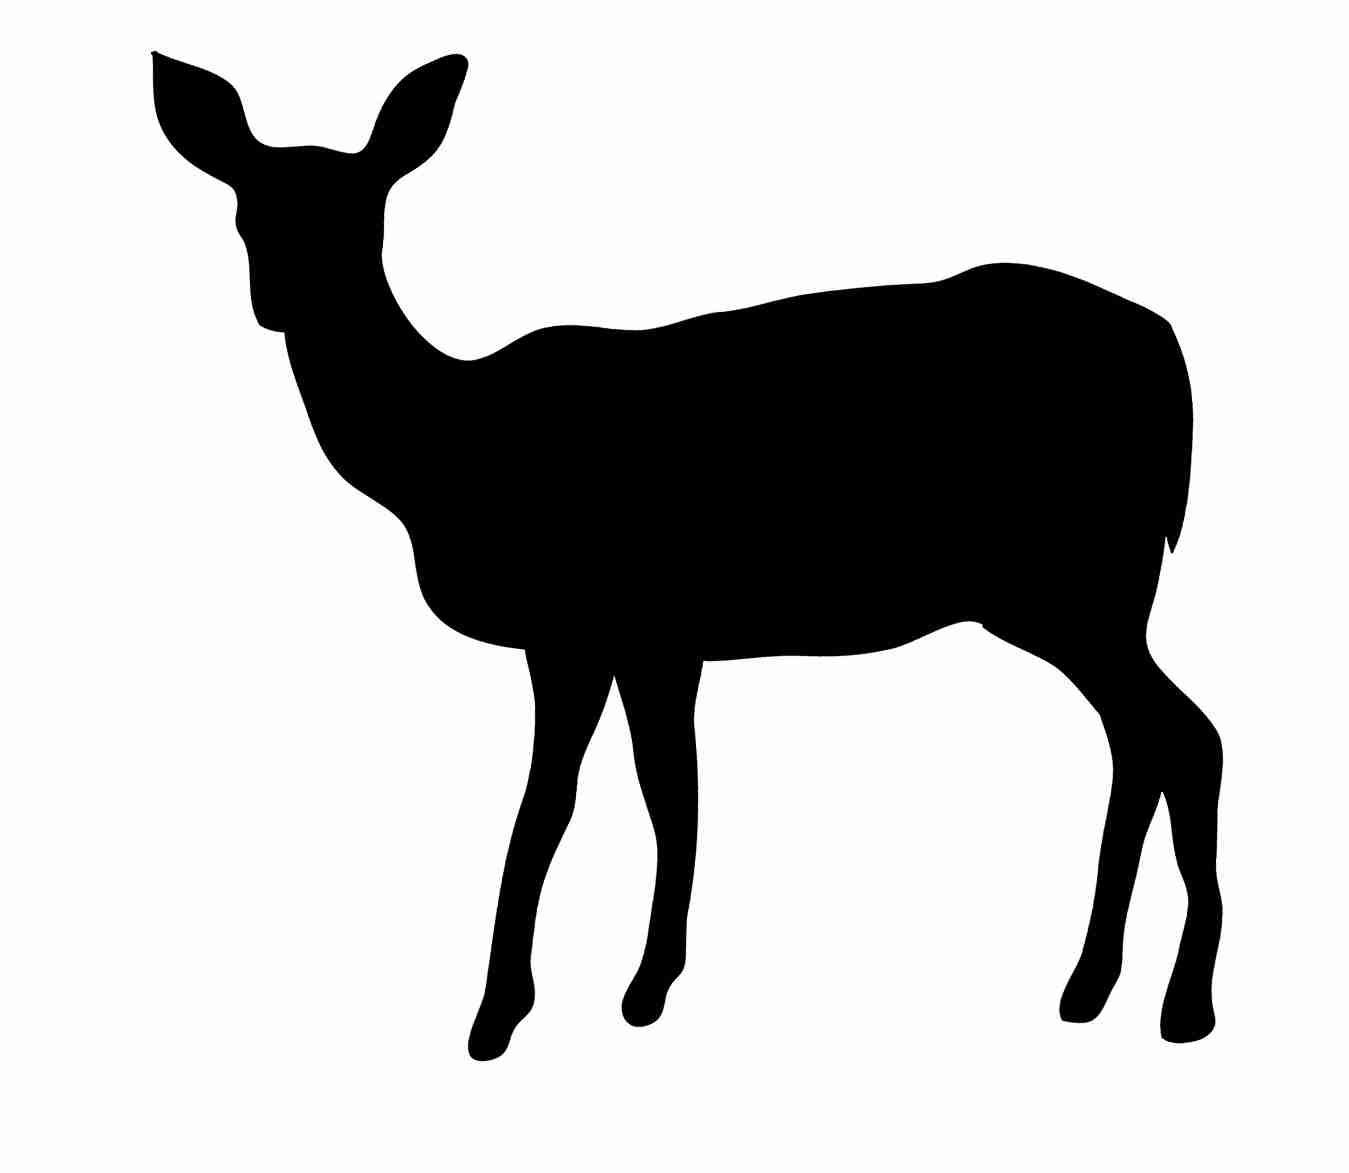 1349x1173 Images For Mule Deer Silhouette Clip Art Silhouettes Beautiful